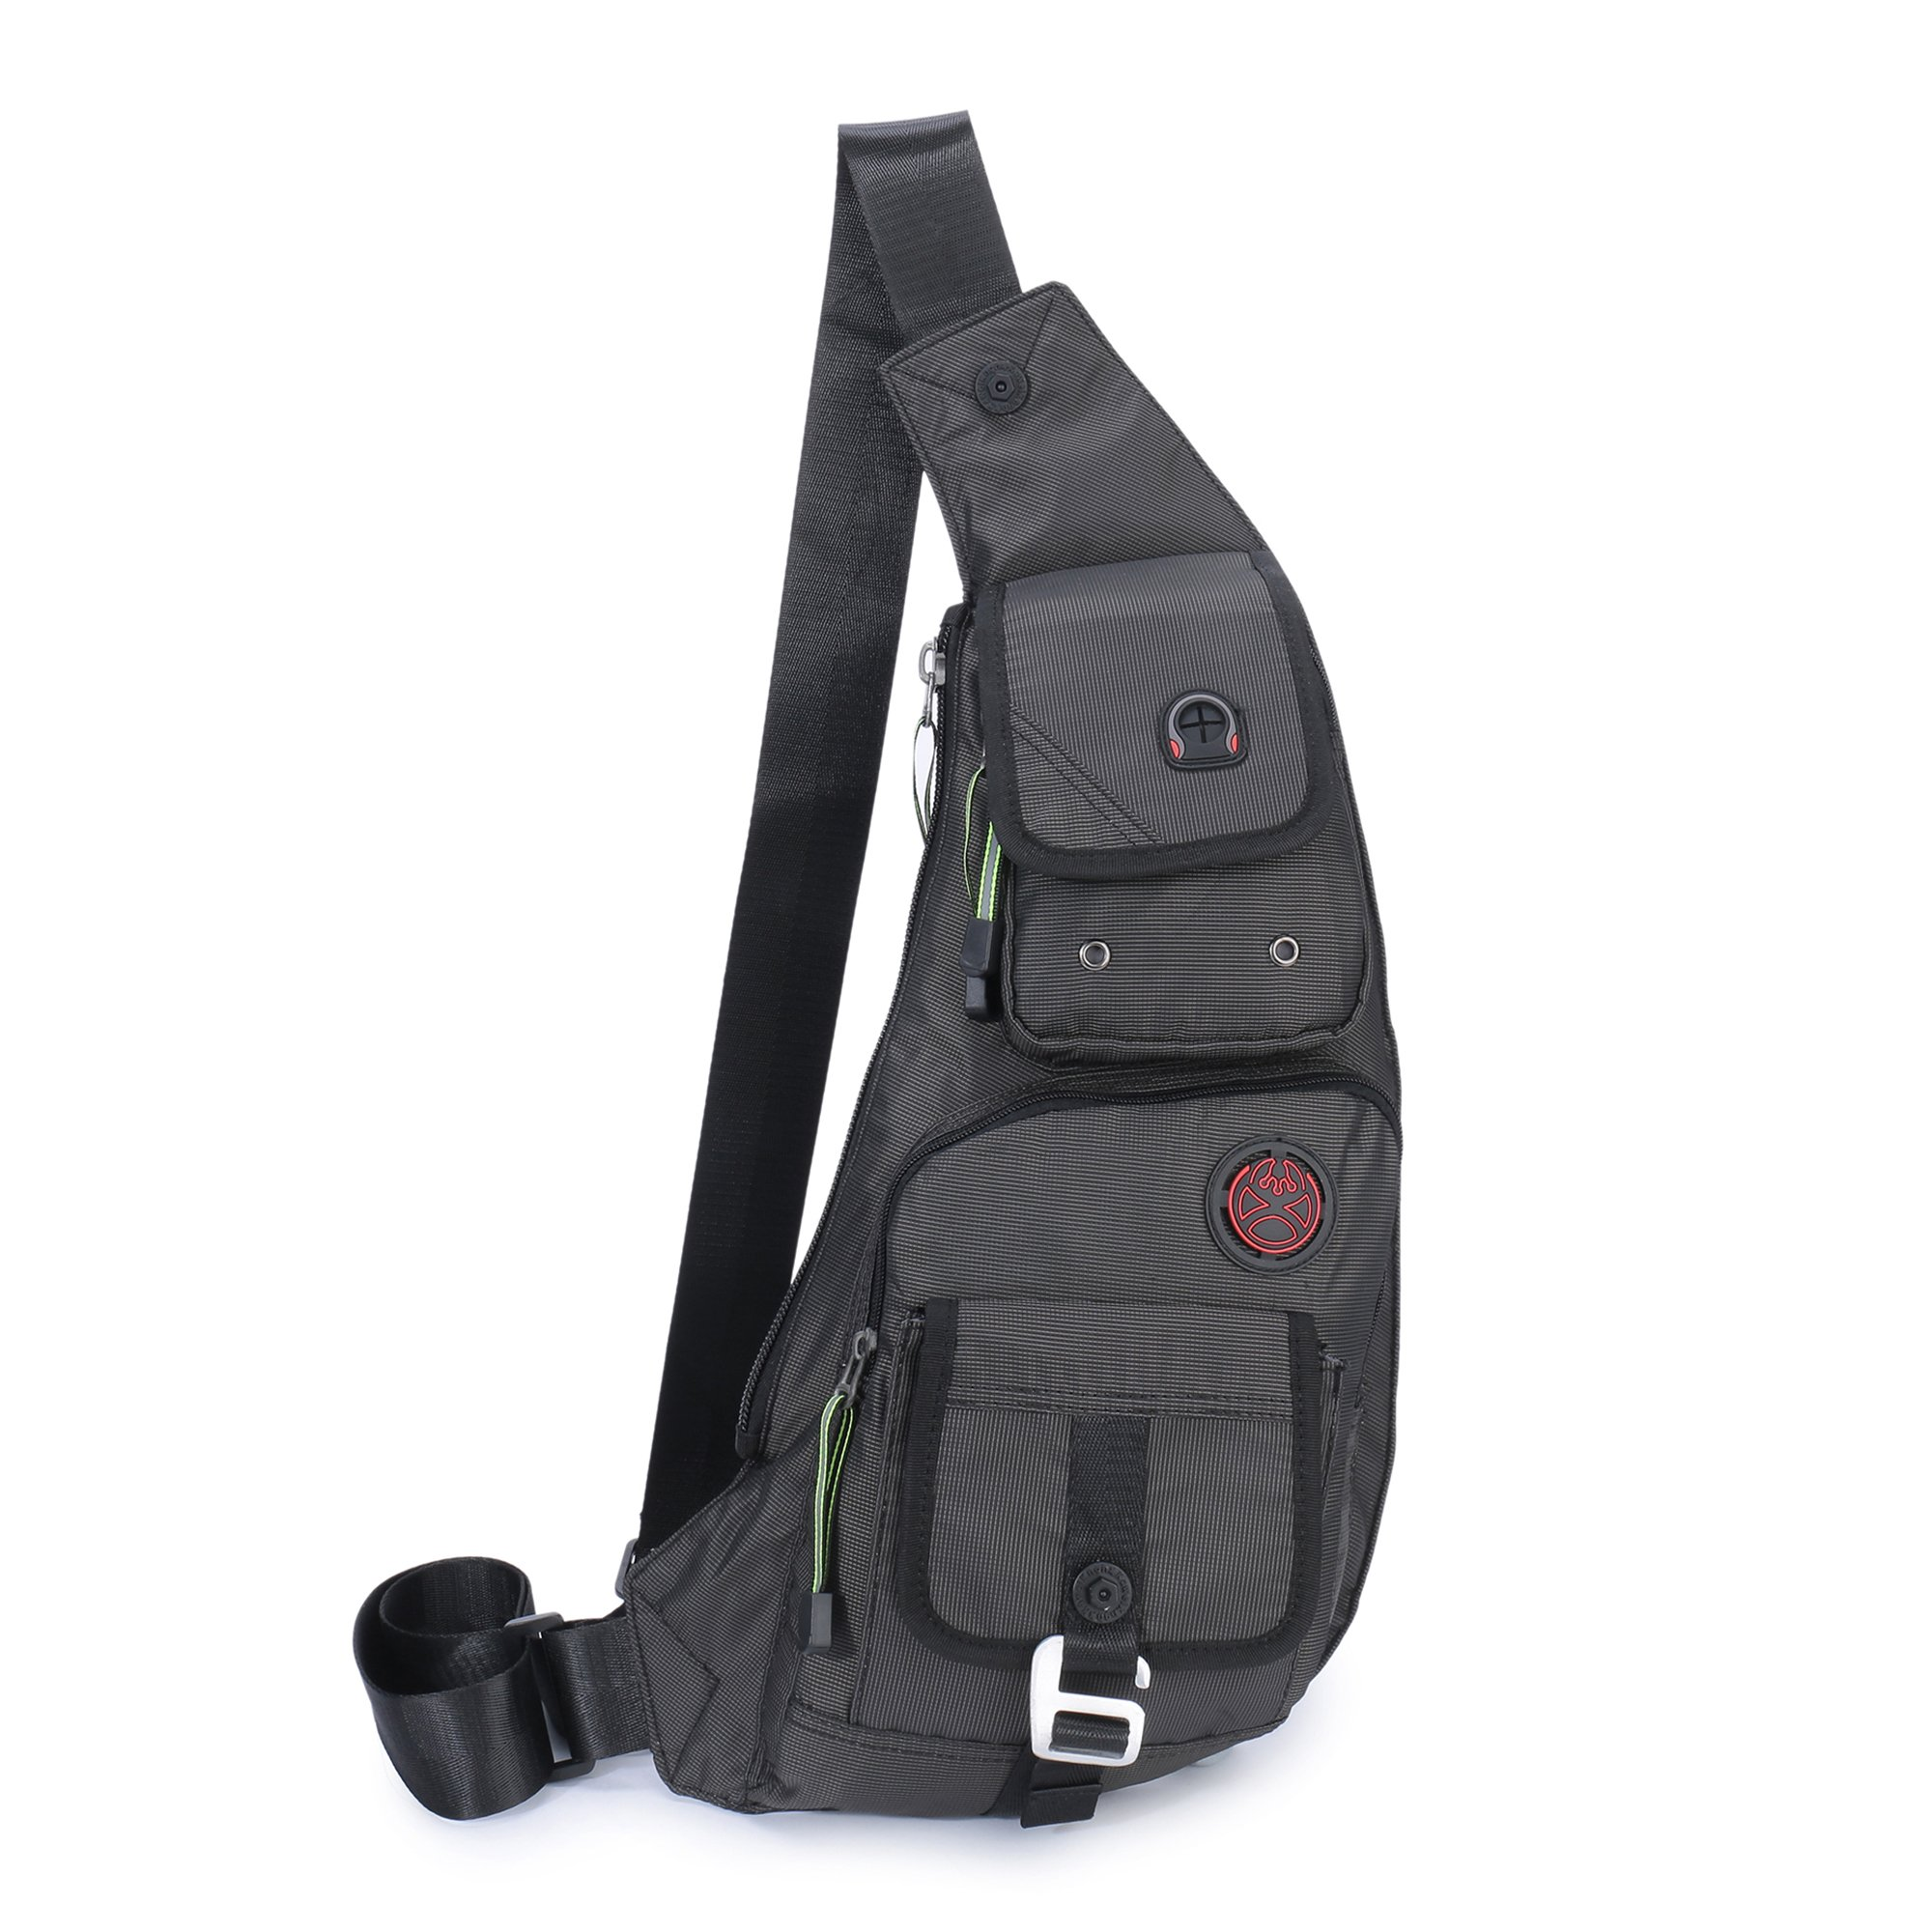 f829870c71b3 DDDH Sling Bags Shoulder Backpack Chest Pack Military Crossbody Bags For  Man Women (2627 Black)